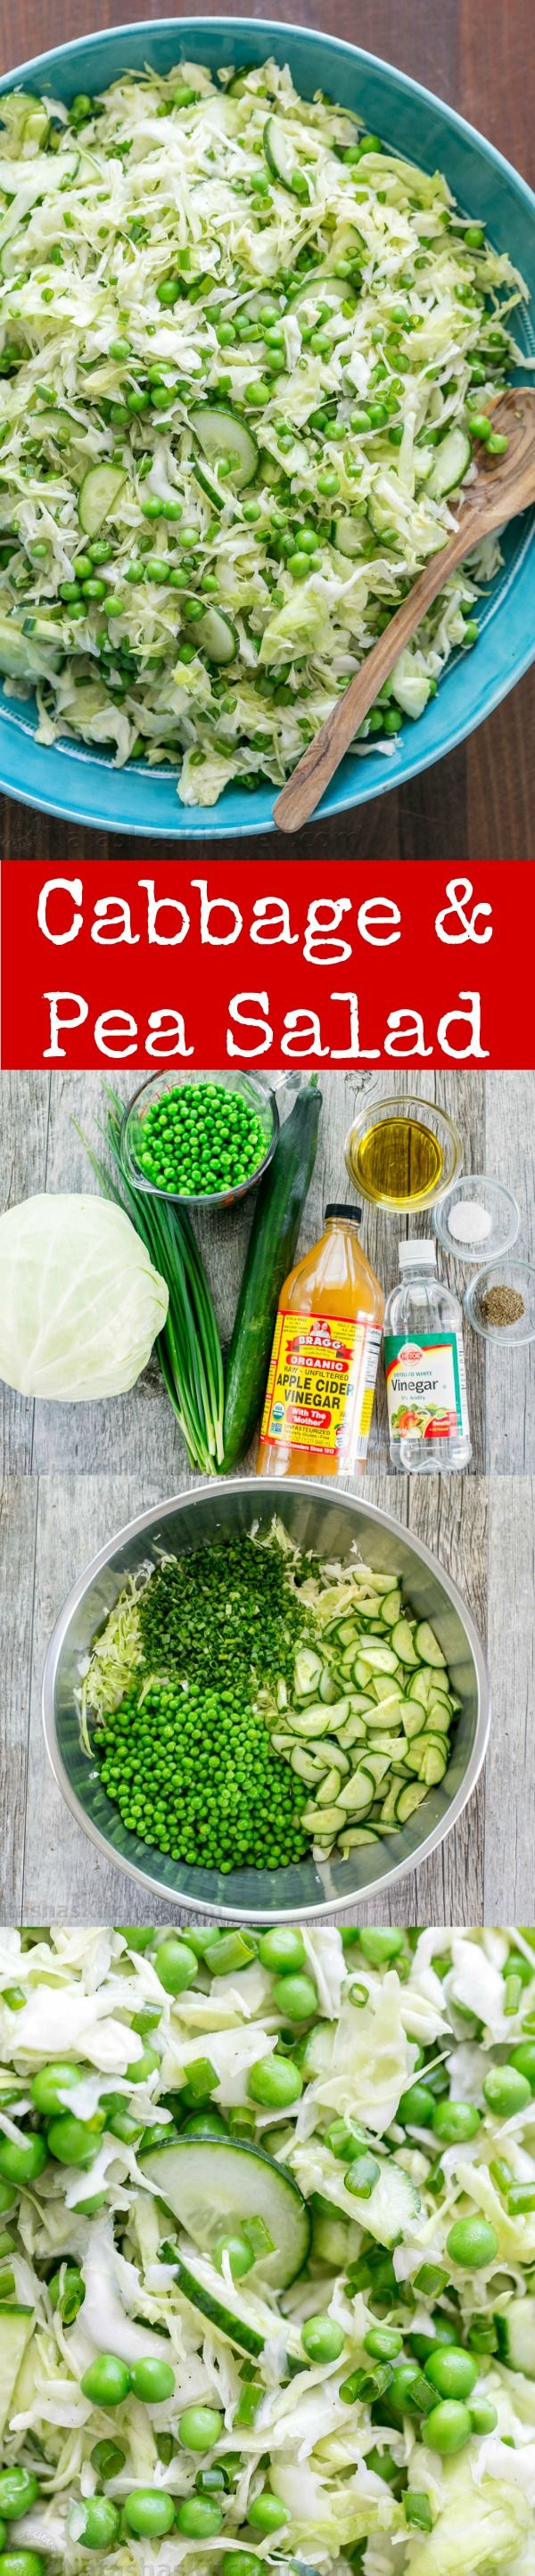 This cabbage and pea salad is vibrant, crisp and fresh. I love the sweet pop of flavor from the peas and the easy zesty dressing. A must try cabbage salad! | natashaskitchen.com